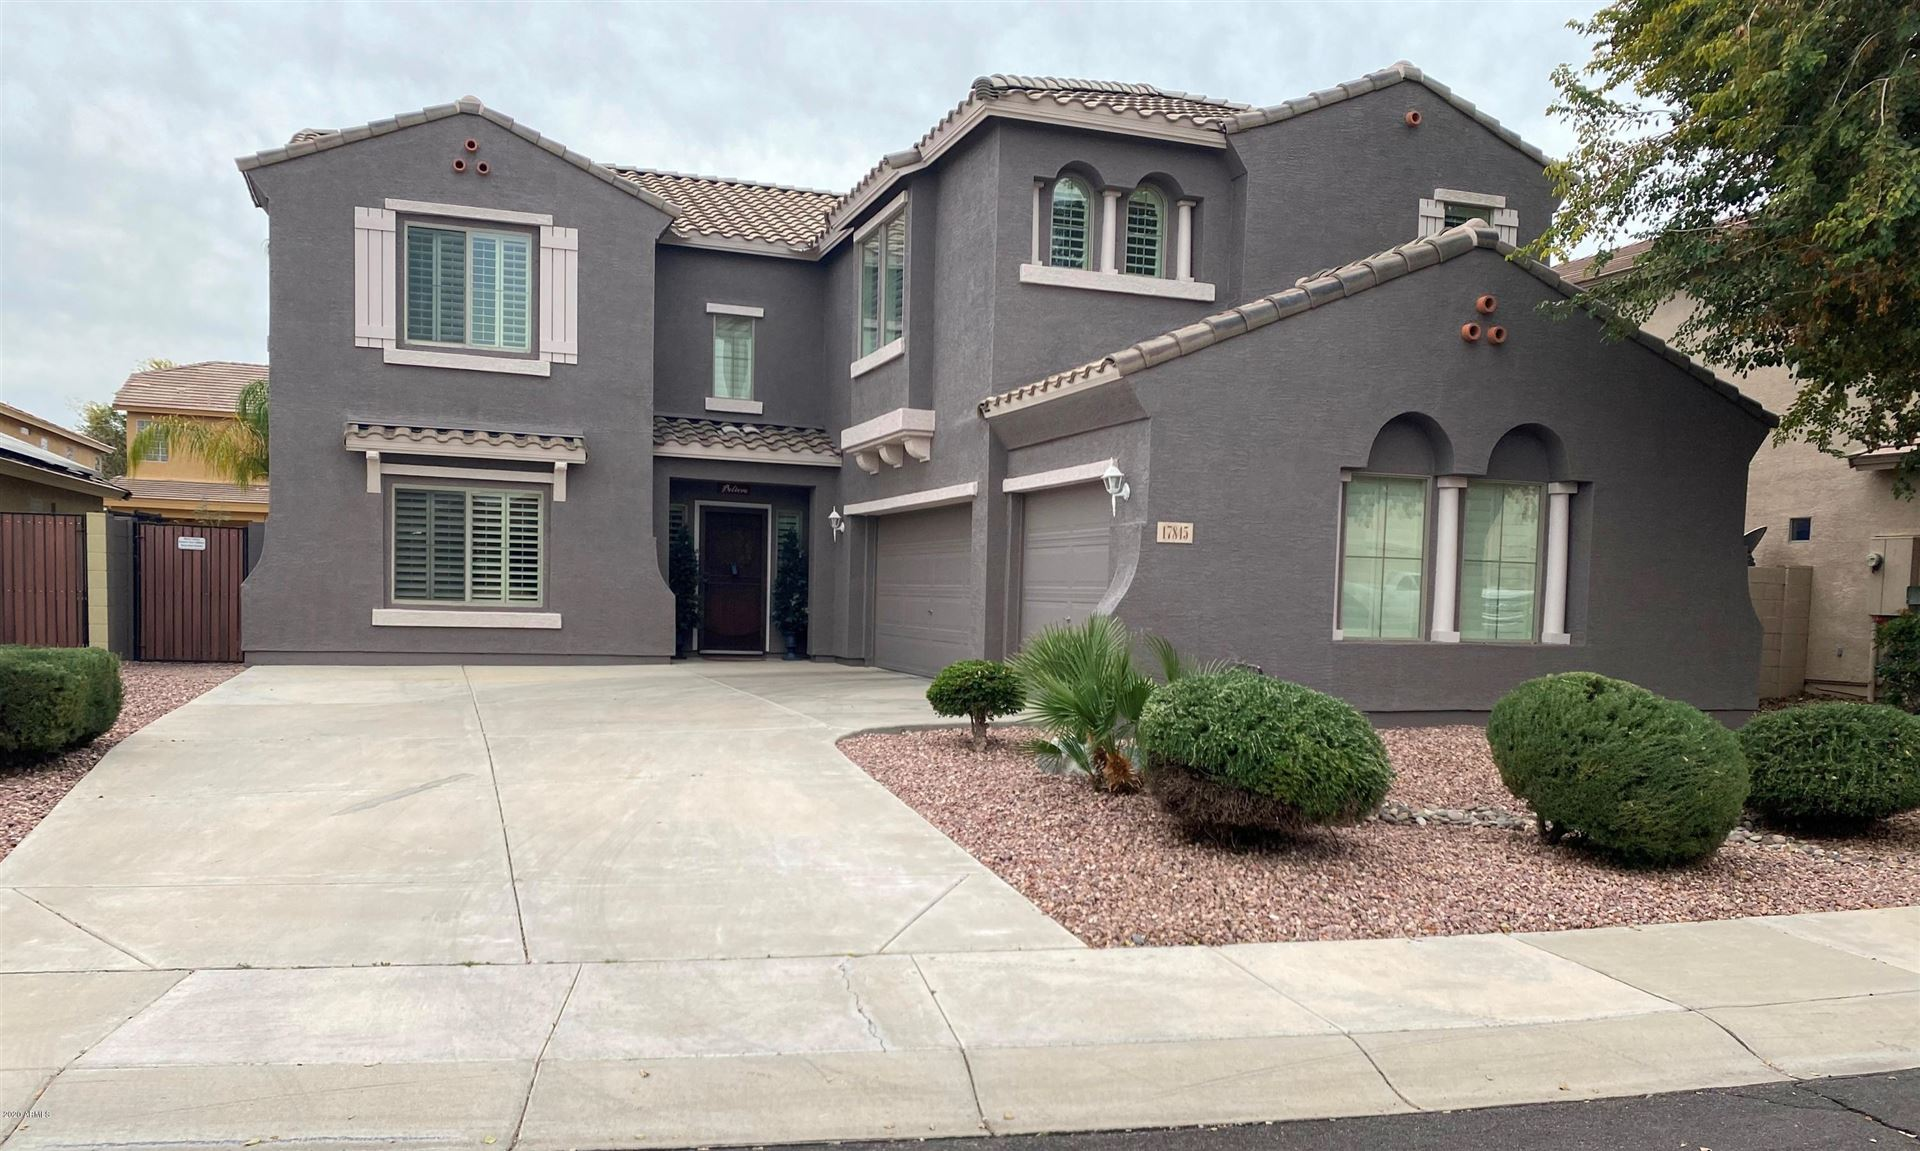 17845 W CROCUS Drive, Surprise, AZ 85388 - #: 6026634